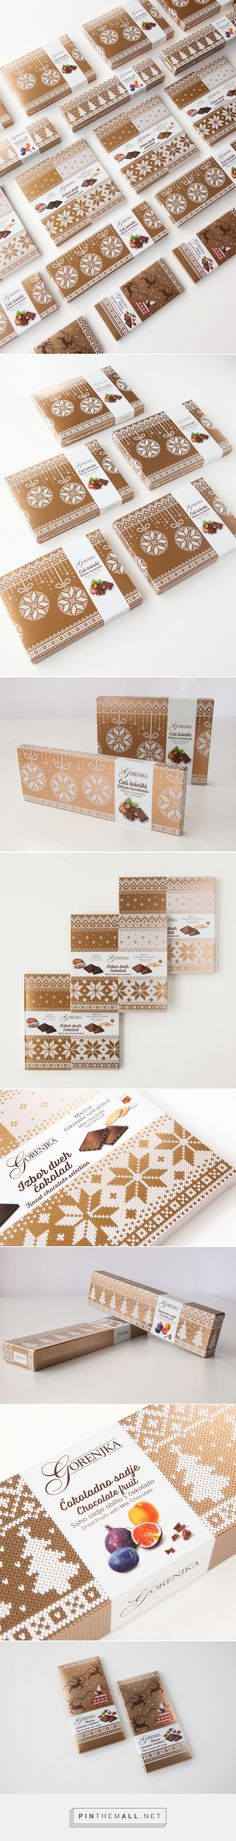 New Year's Gorenjka Special Chocolate Collection on Packaging of the World - Creative Package Design Gallery - http://www.packagingoftheworld.com/2016/01/new-years-gorenjka-special-chocolate.html